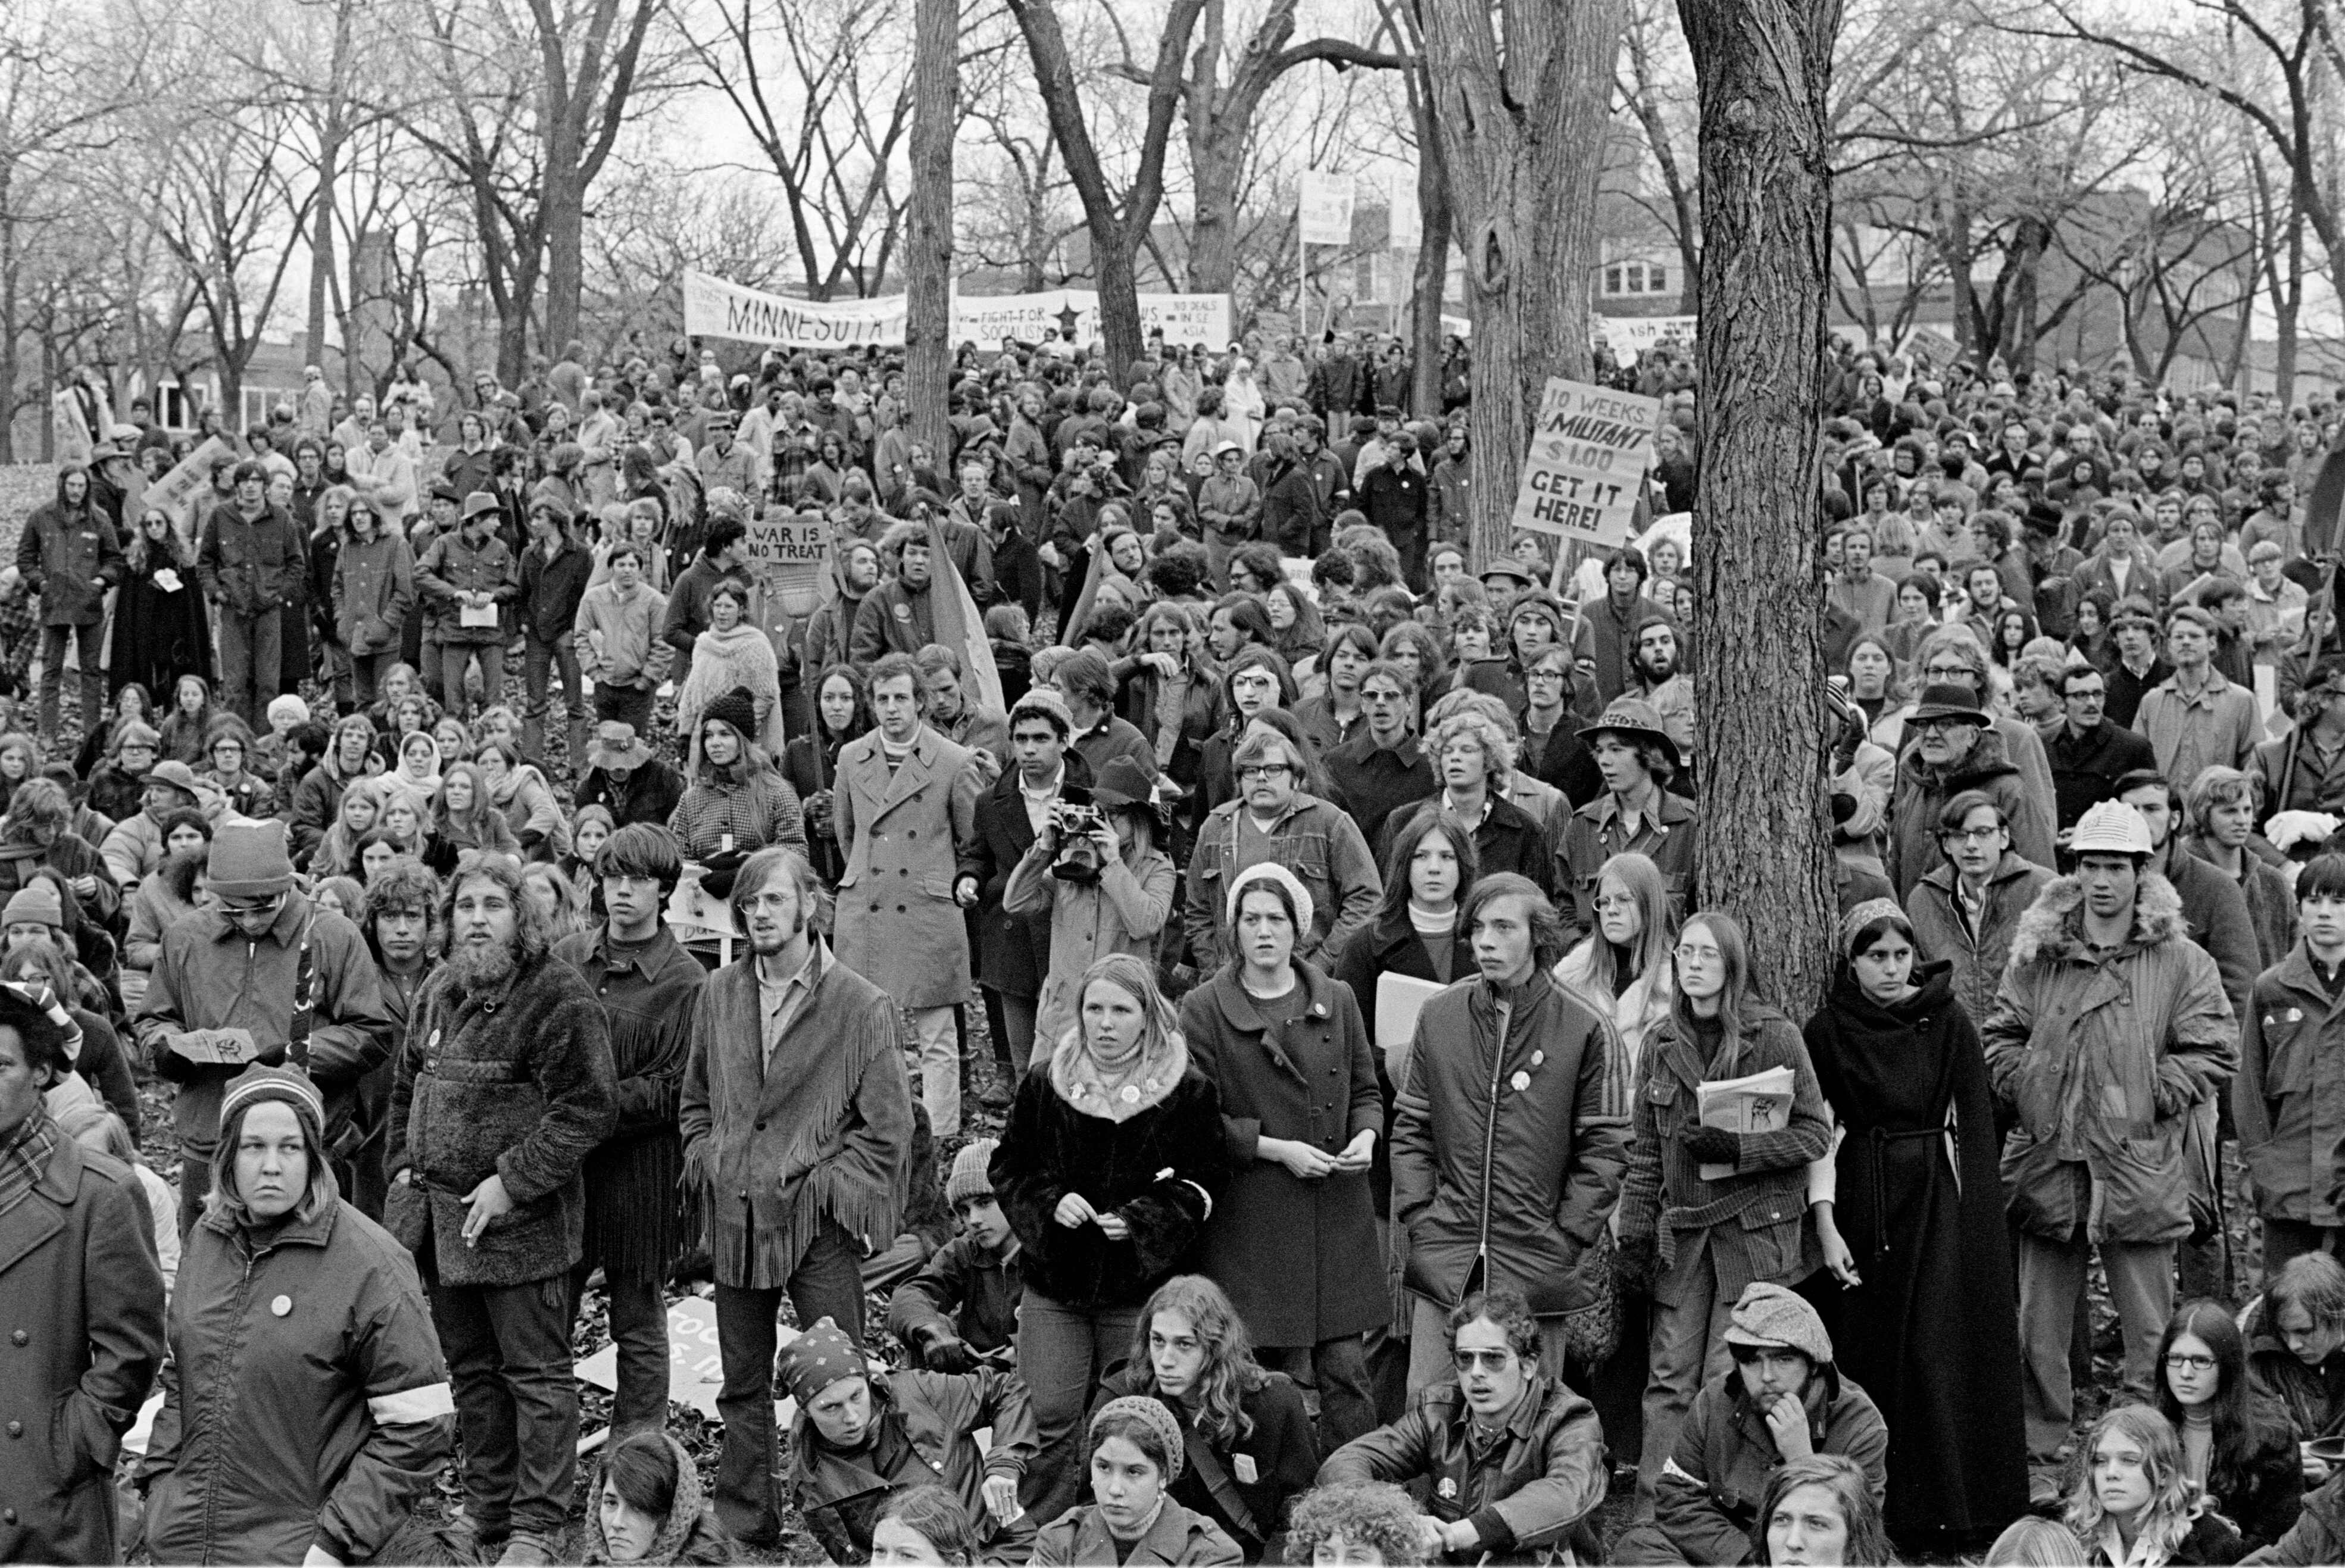 Black and white photo of large Vietnam War protestor group.